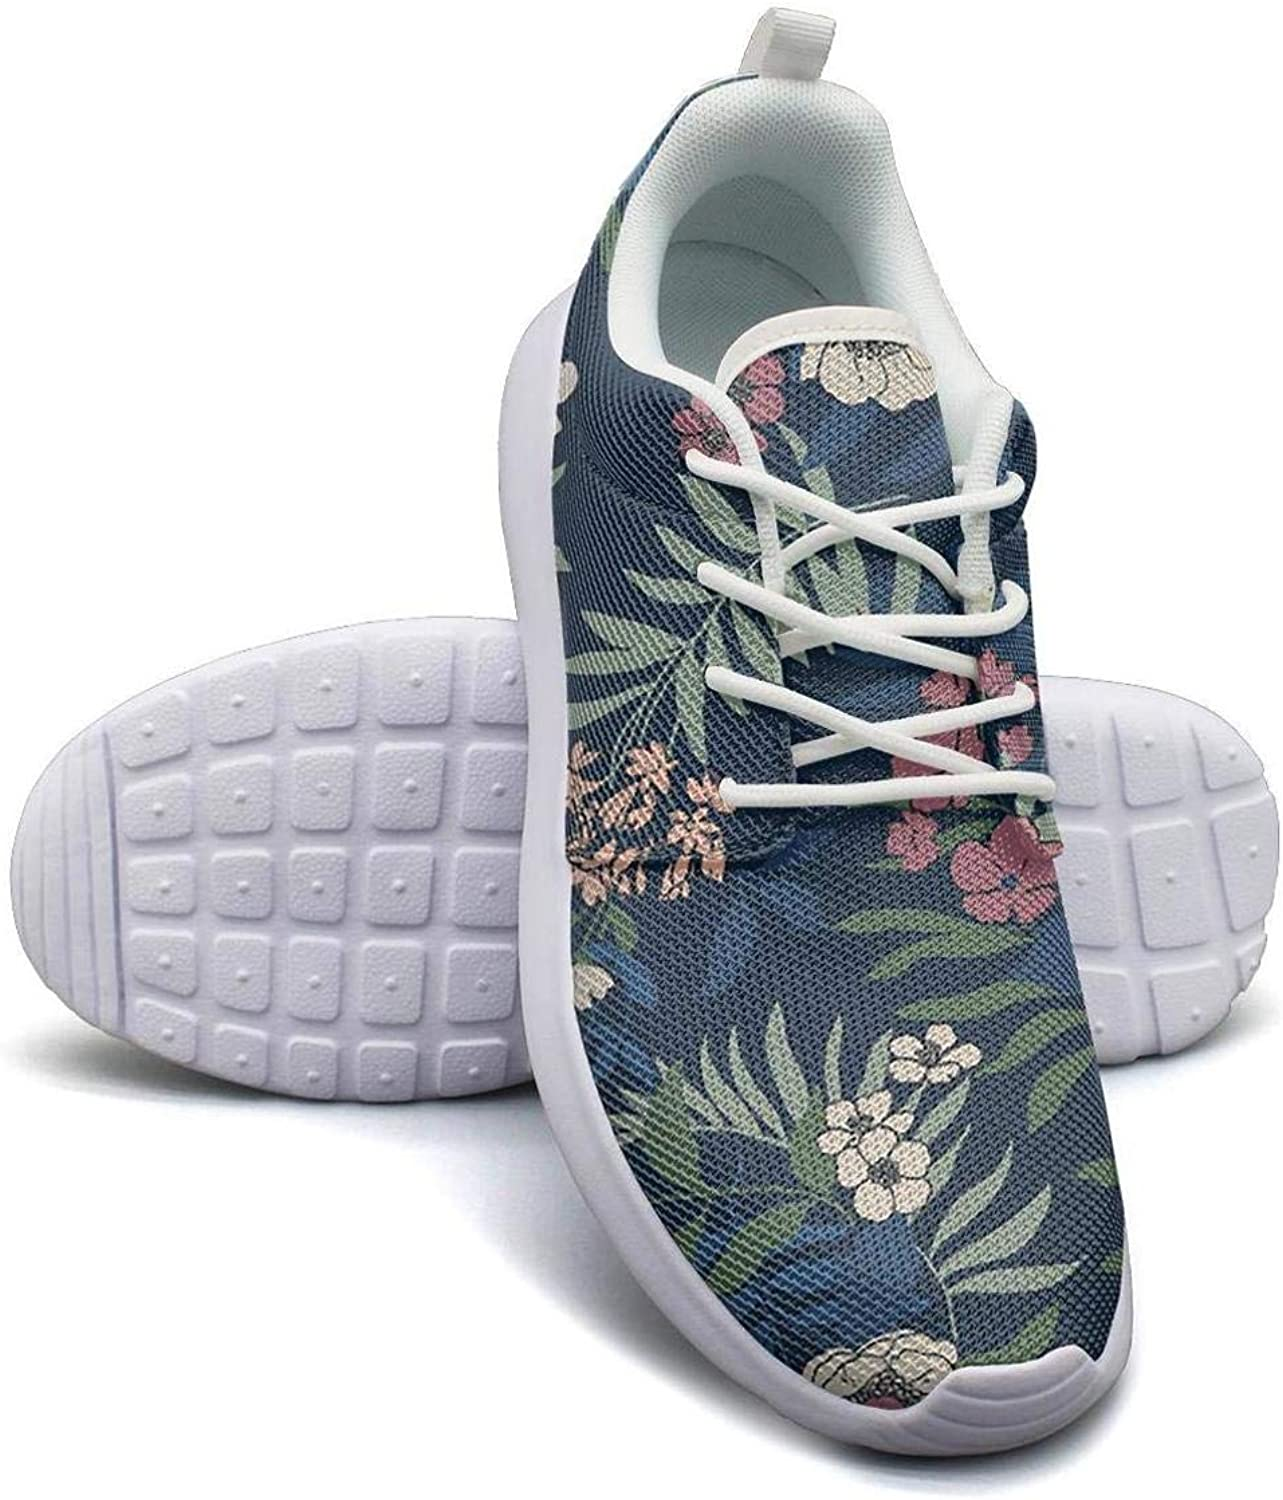 CHALi99 Fashion Women Lightweight Mesh shoes Tropical Floral Ferns Sneakers Running Rubber Sole